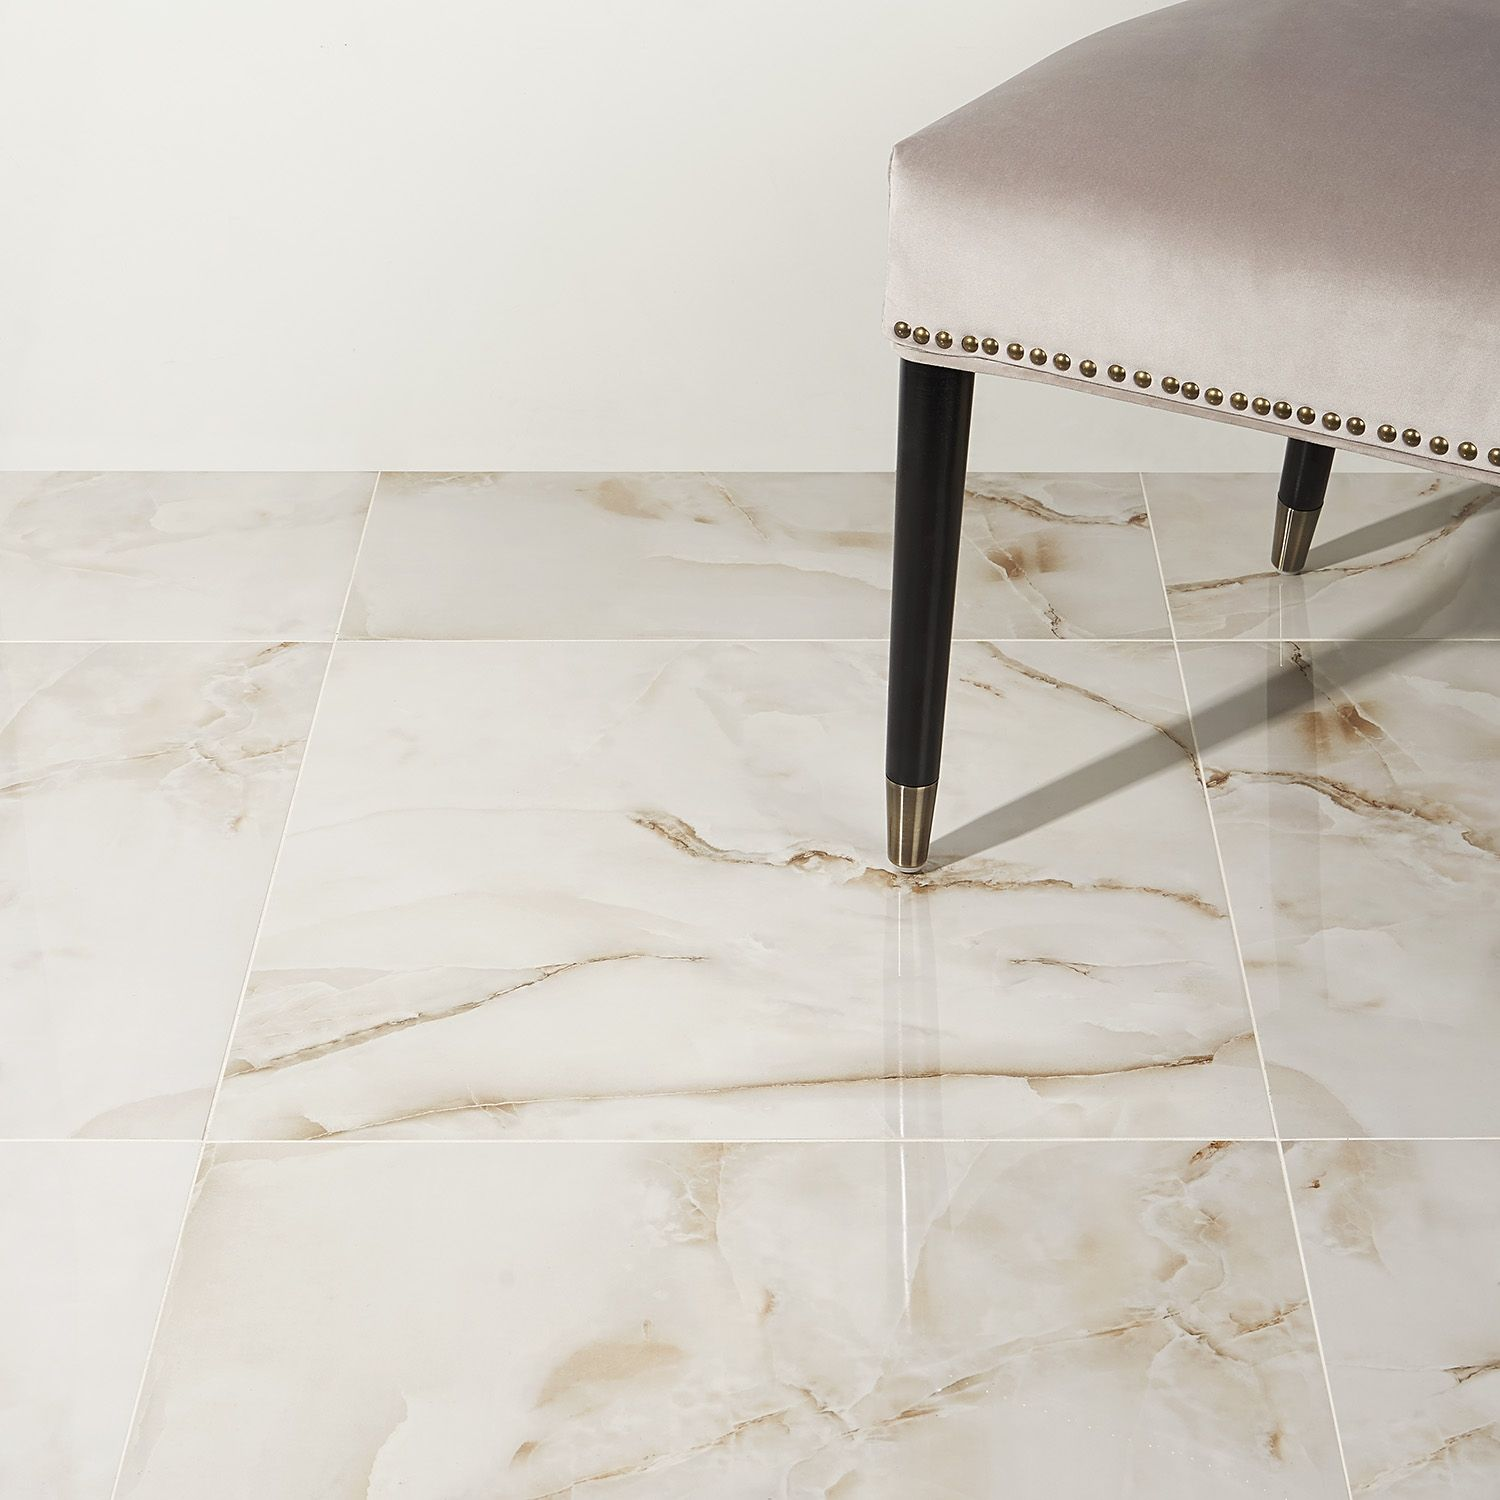 Lumina Onyx Pearl 24x24 Polished Porcelain Tile